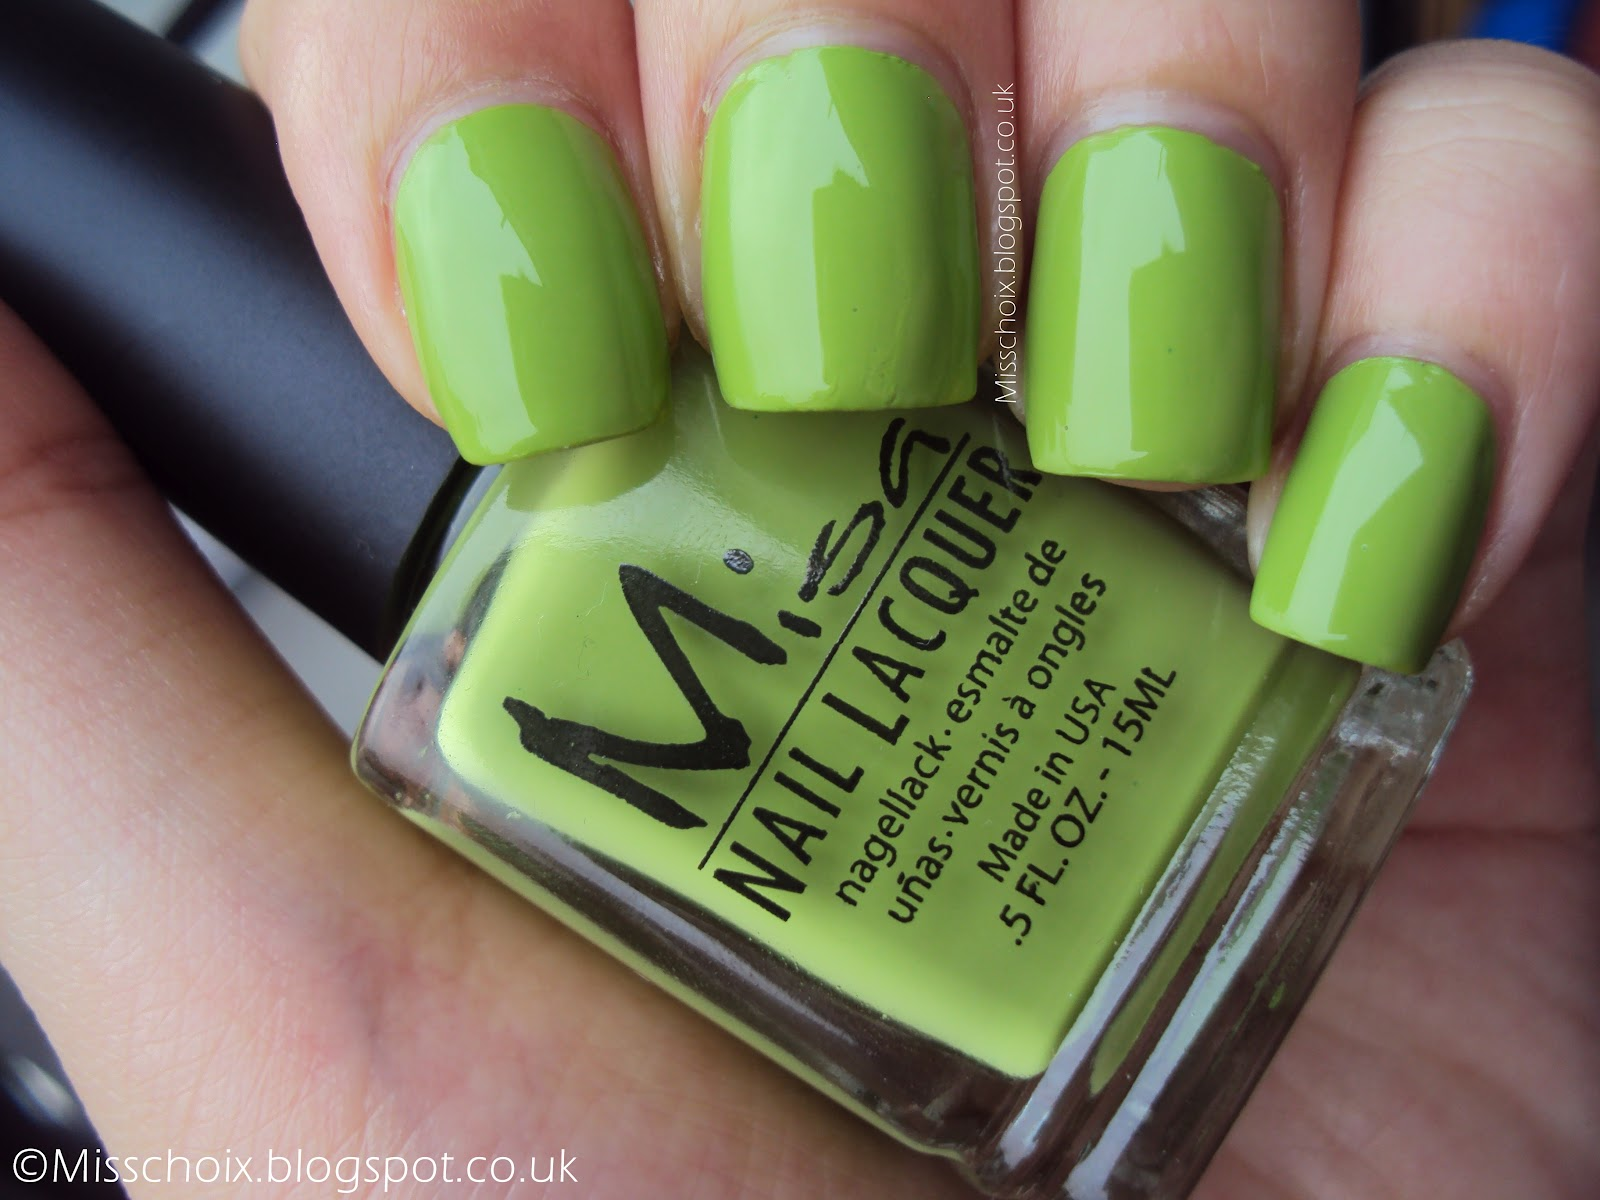 NOTD: Misa\'s good to be green - Choi\'s nails